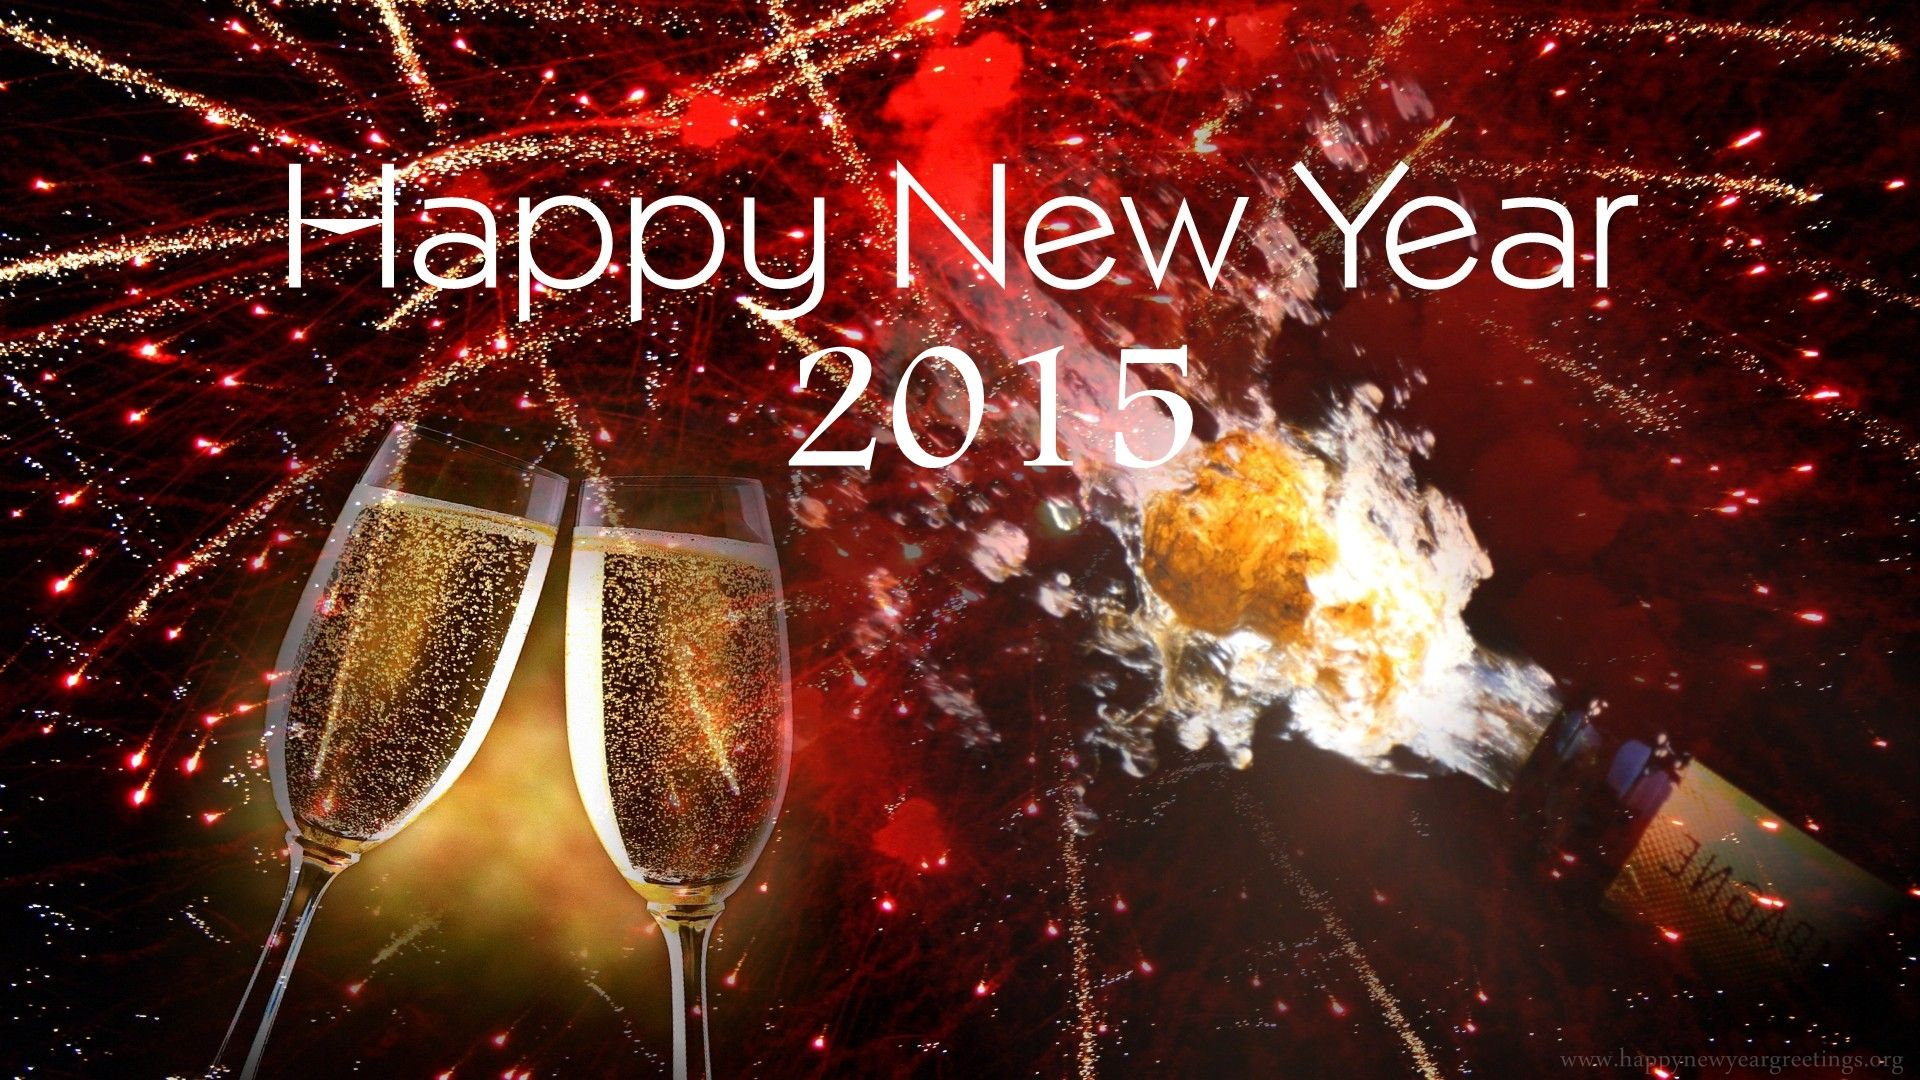 Happy New Year Images 2015 Happy New Year And A Successful 2015